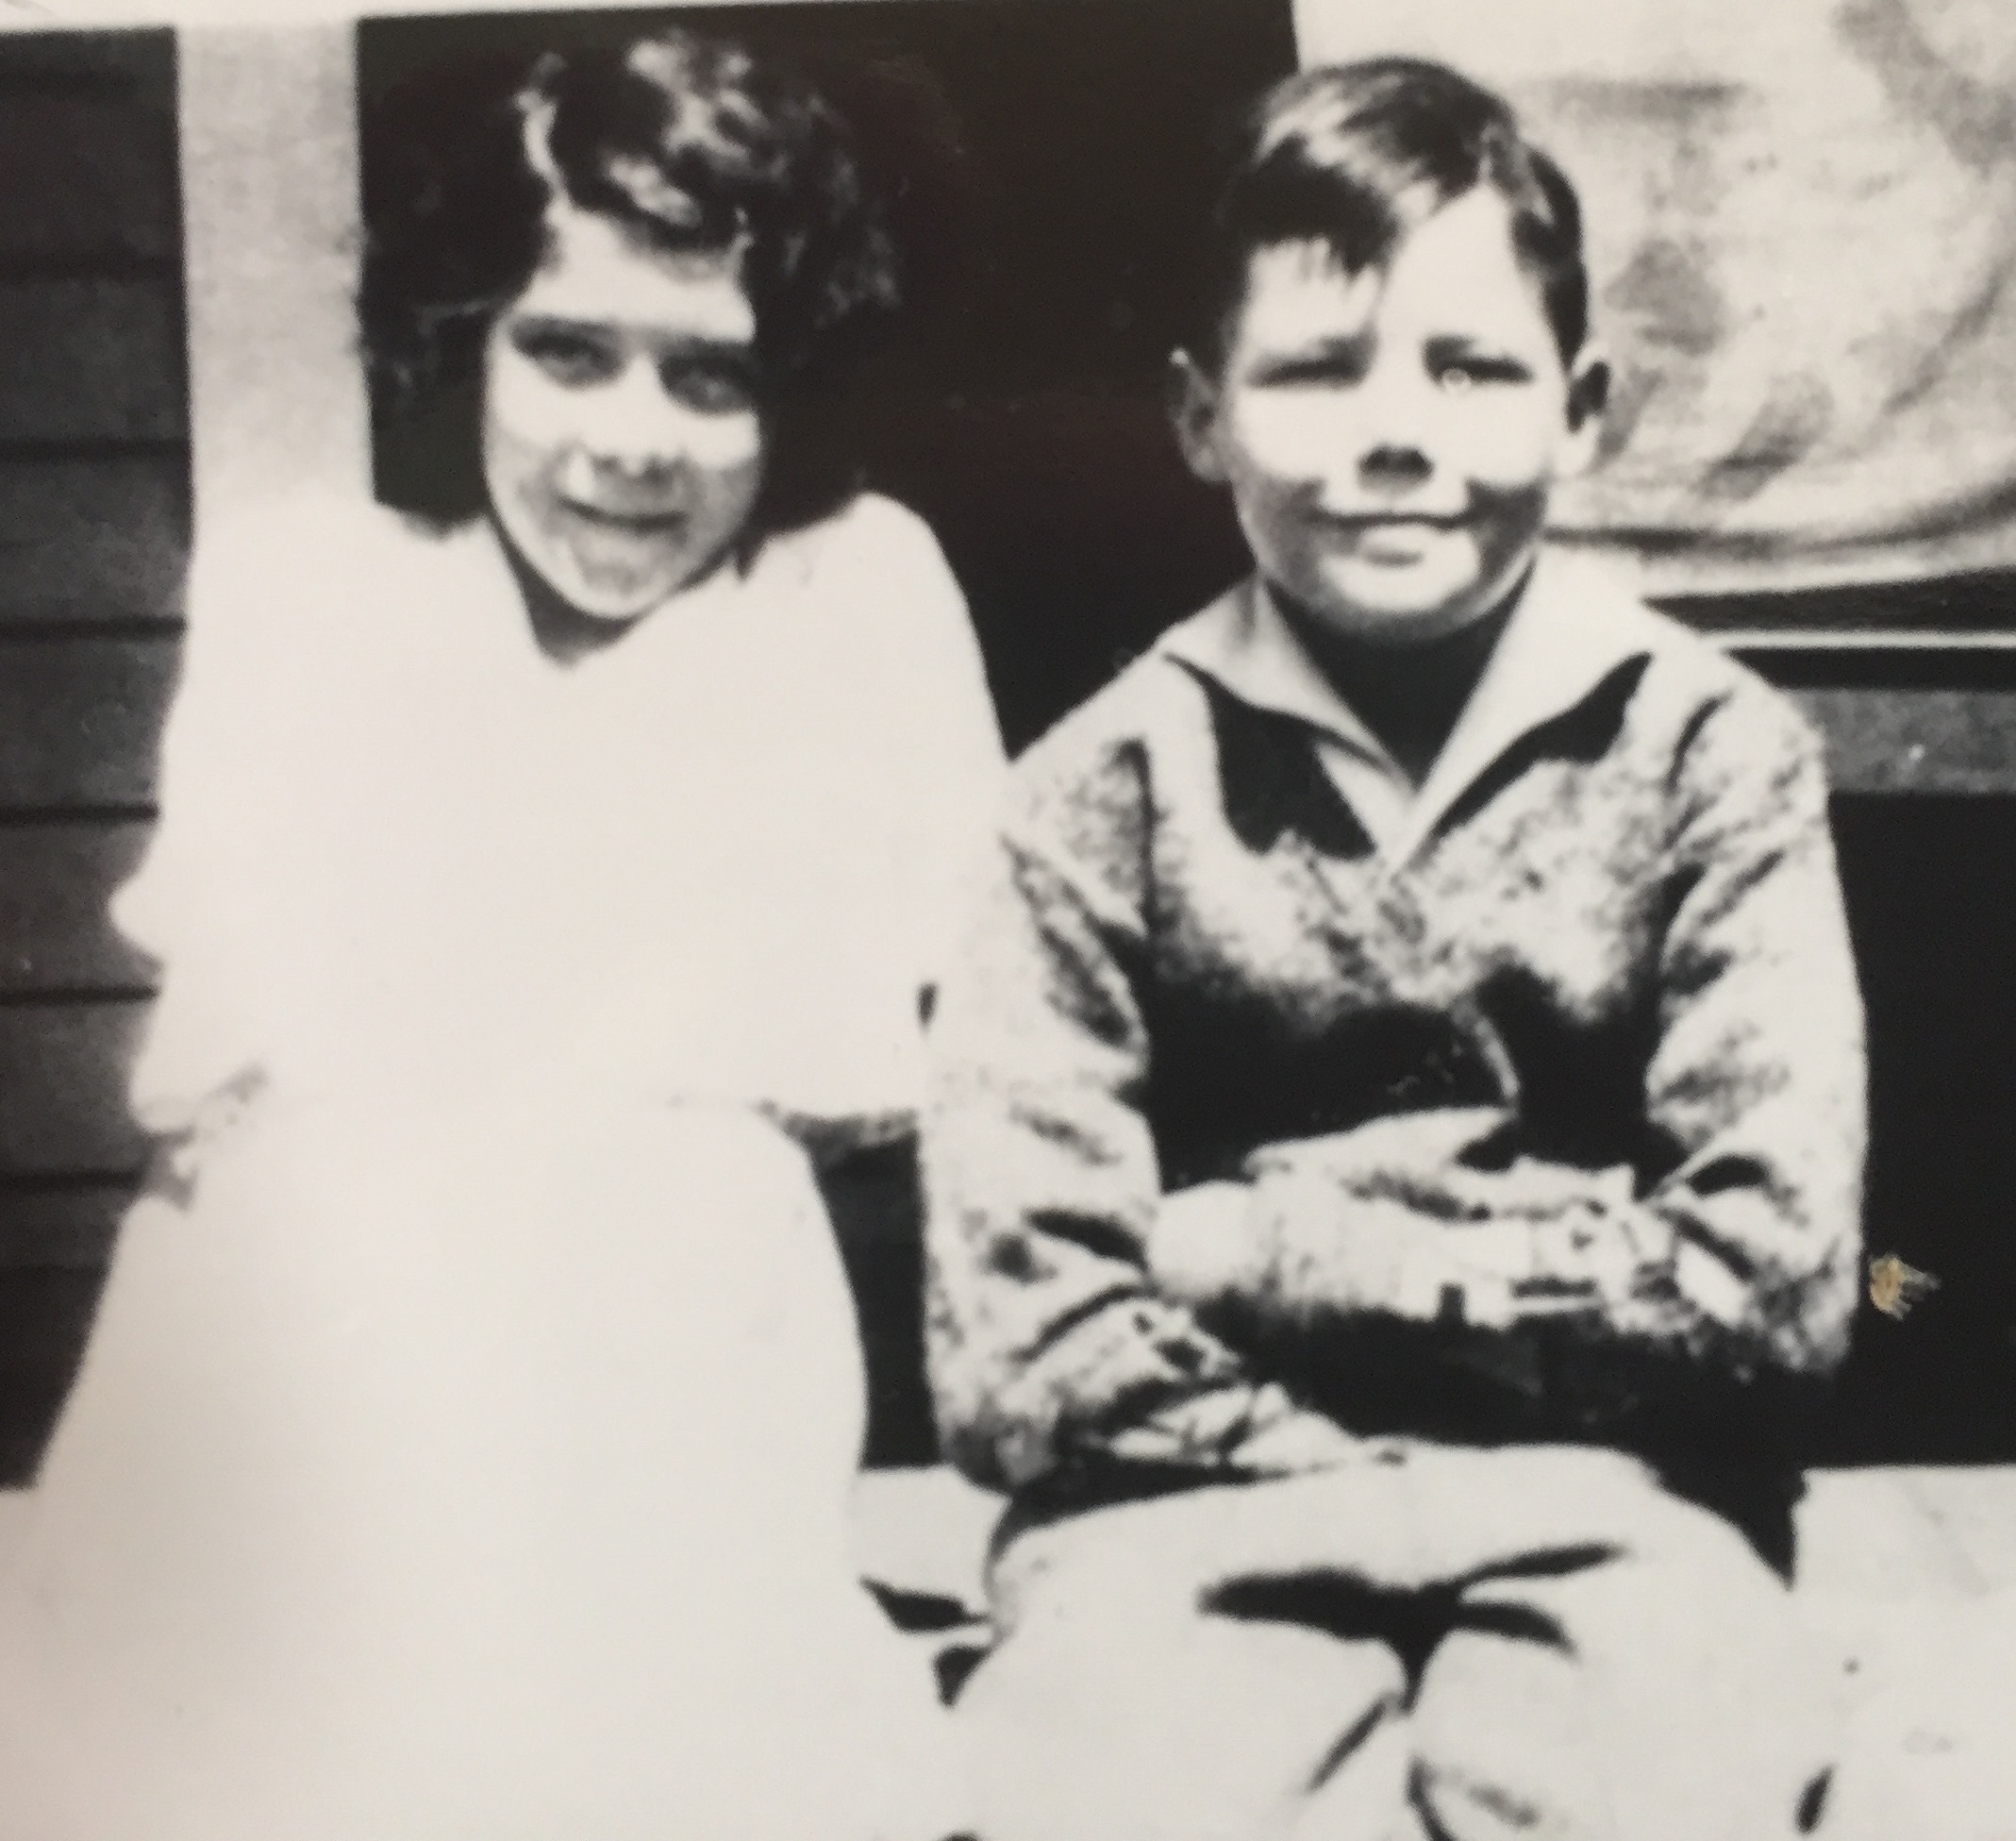 Gladys Juanita and Thomas McDonald Richardson, abt 1932